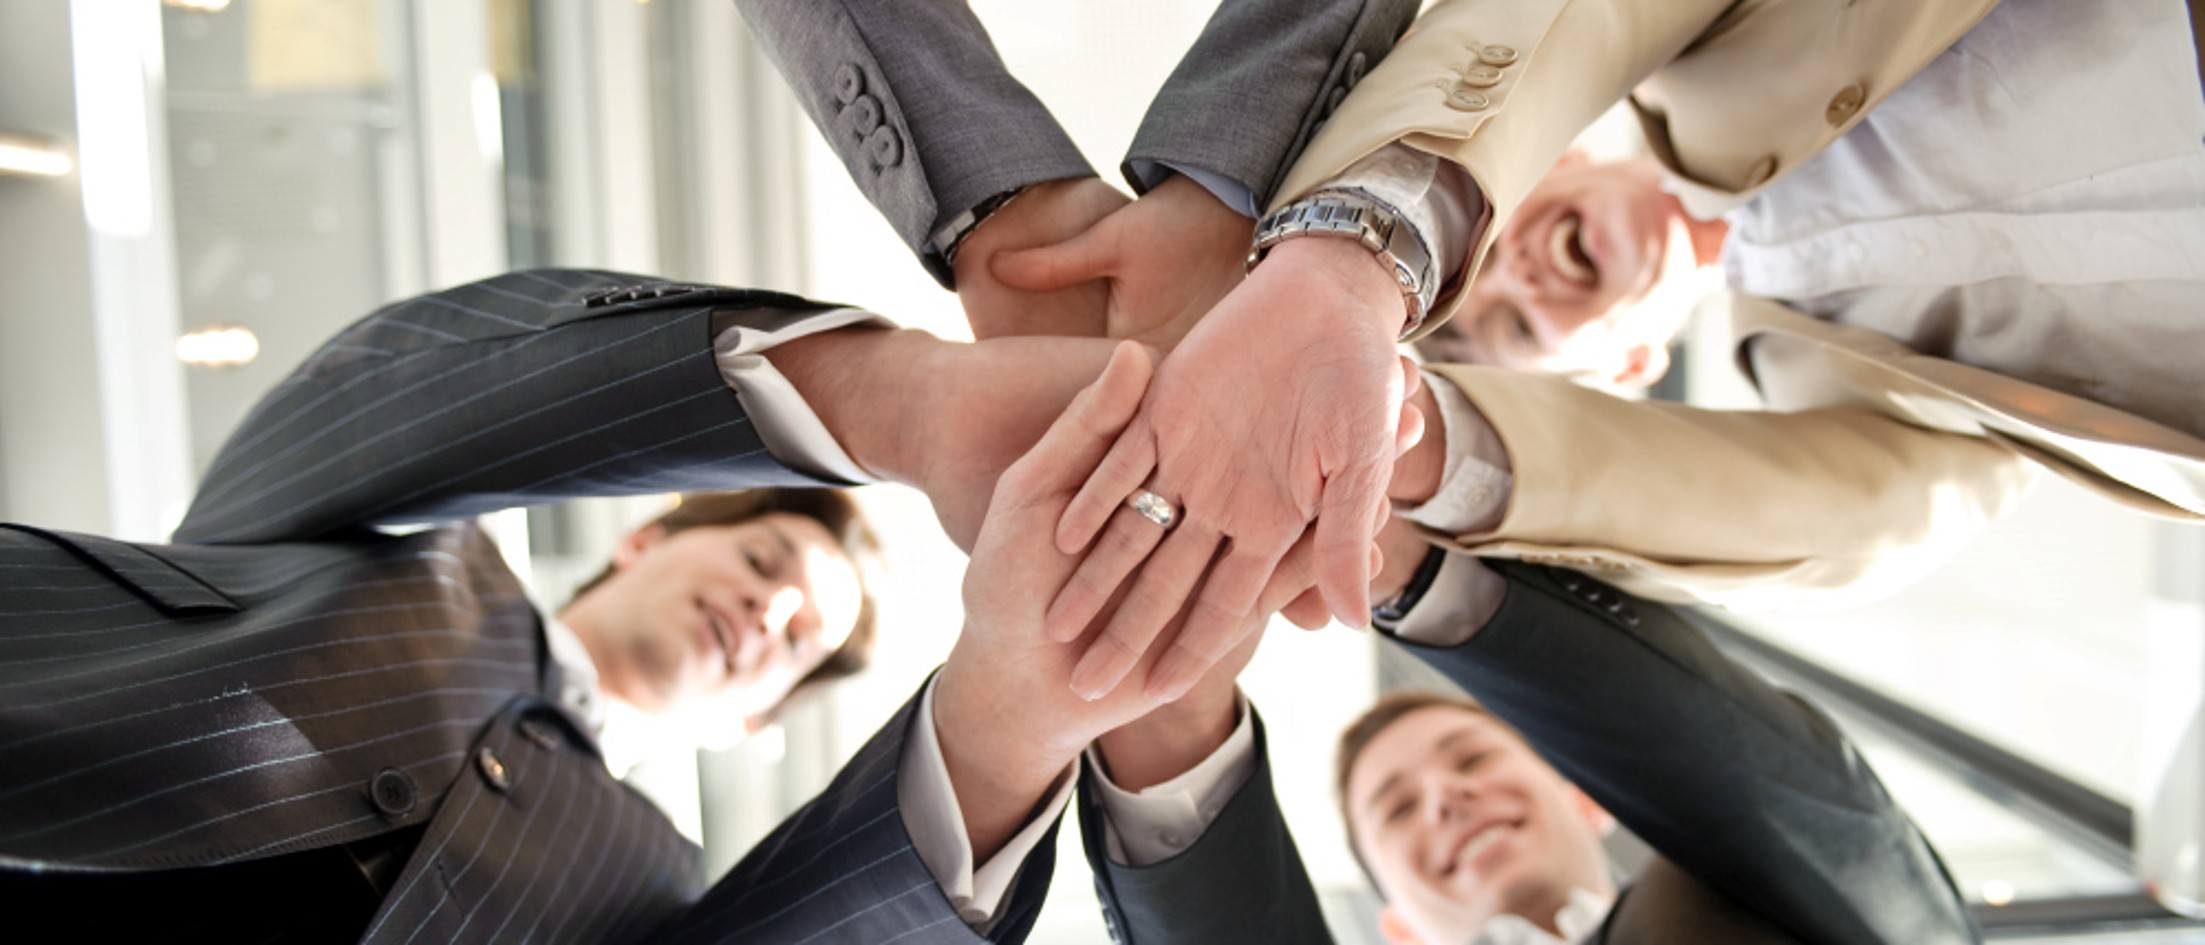 Colleagues buildig circle with hands